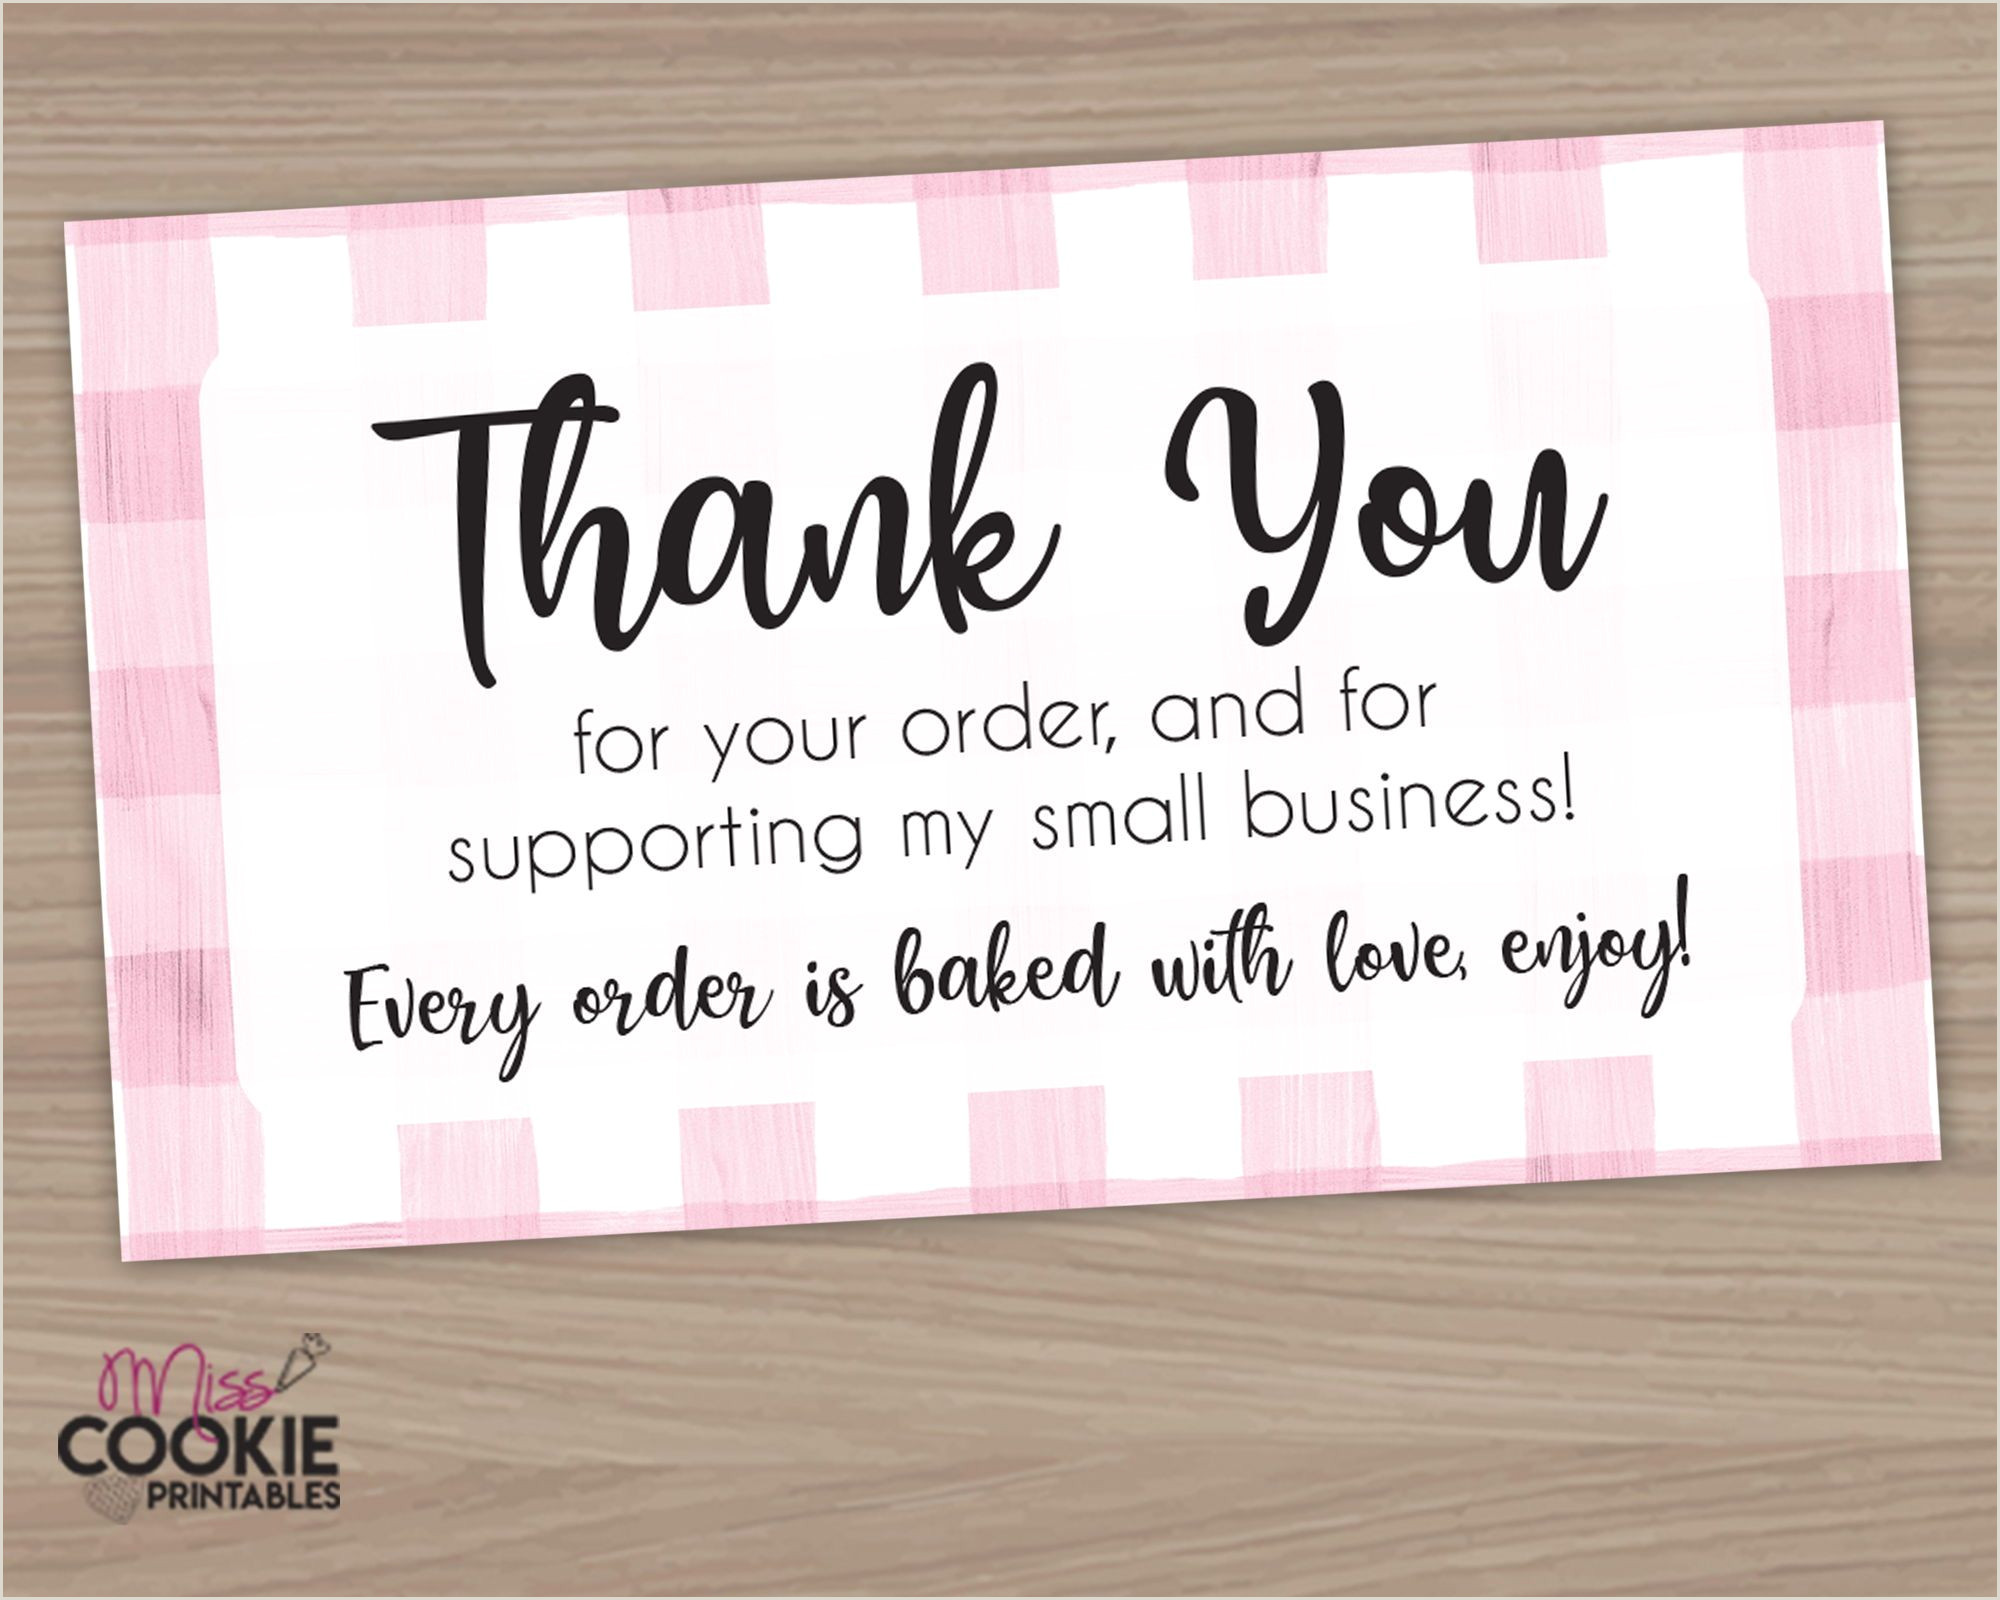 Cool Thank You Card Designs Printable Thank You For Your Order And For Supporting My